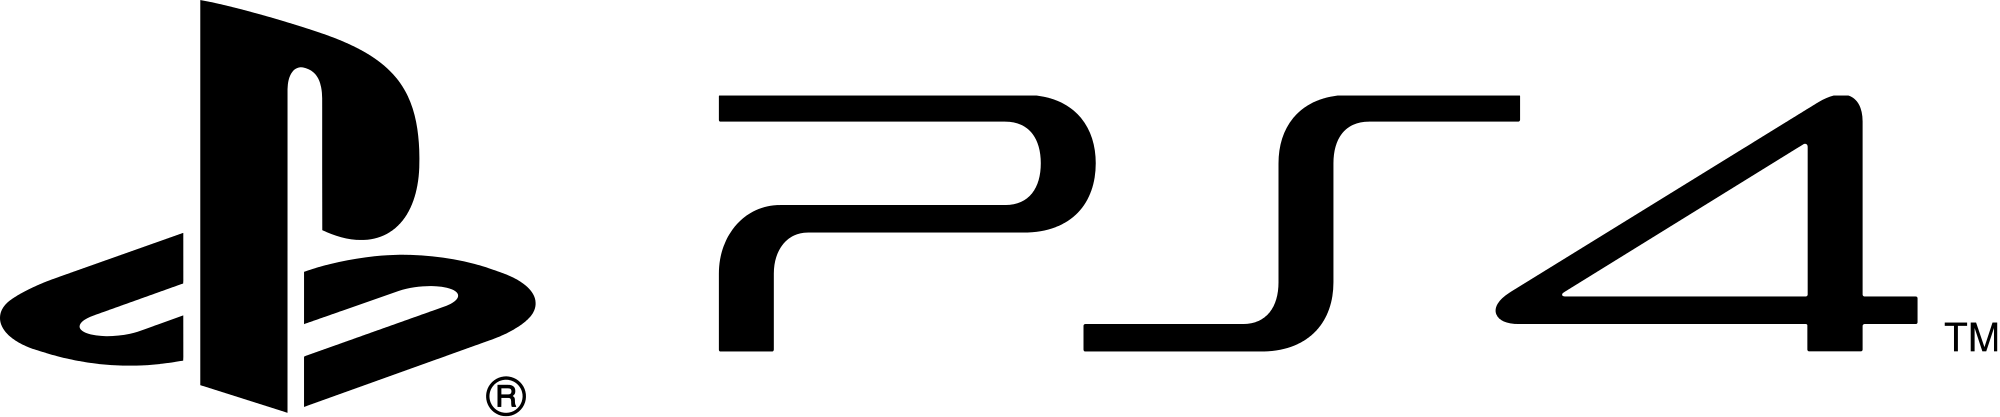 Ps4 PNG - 113021